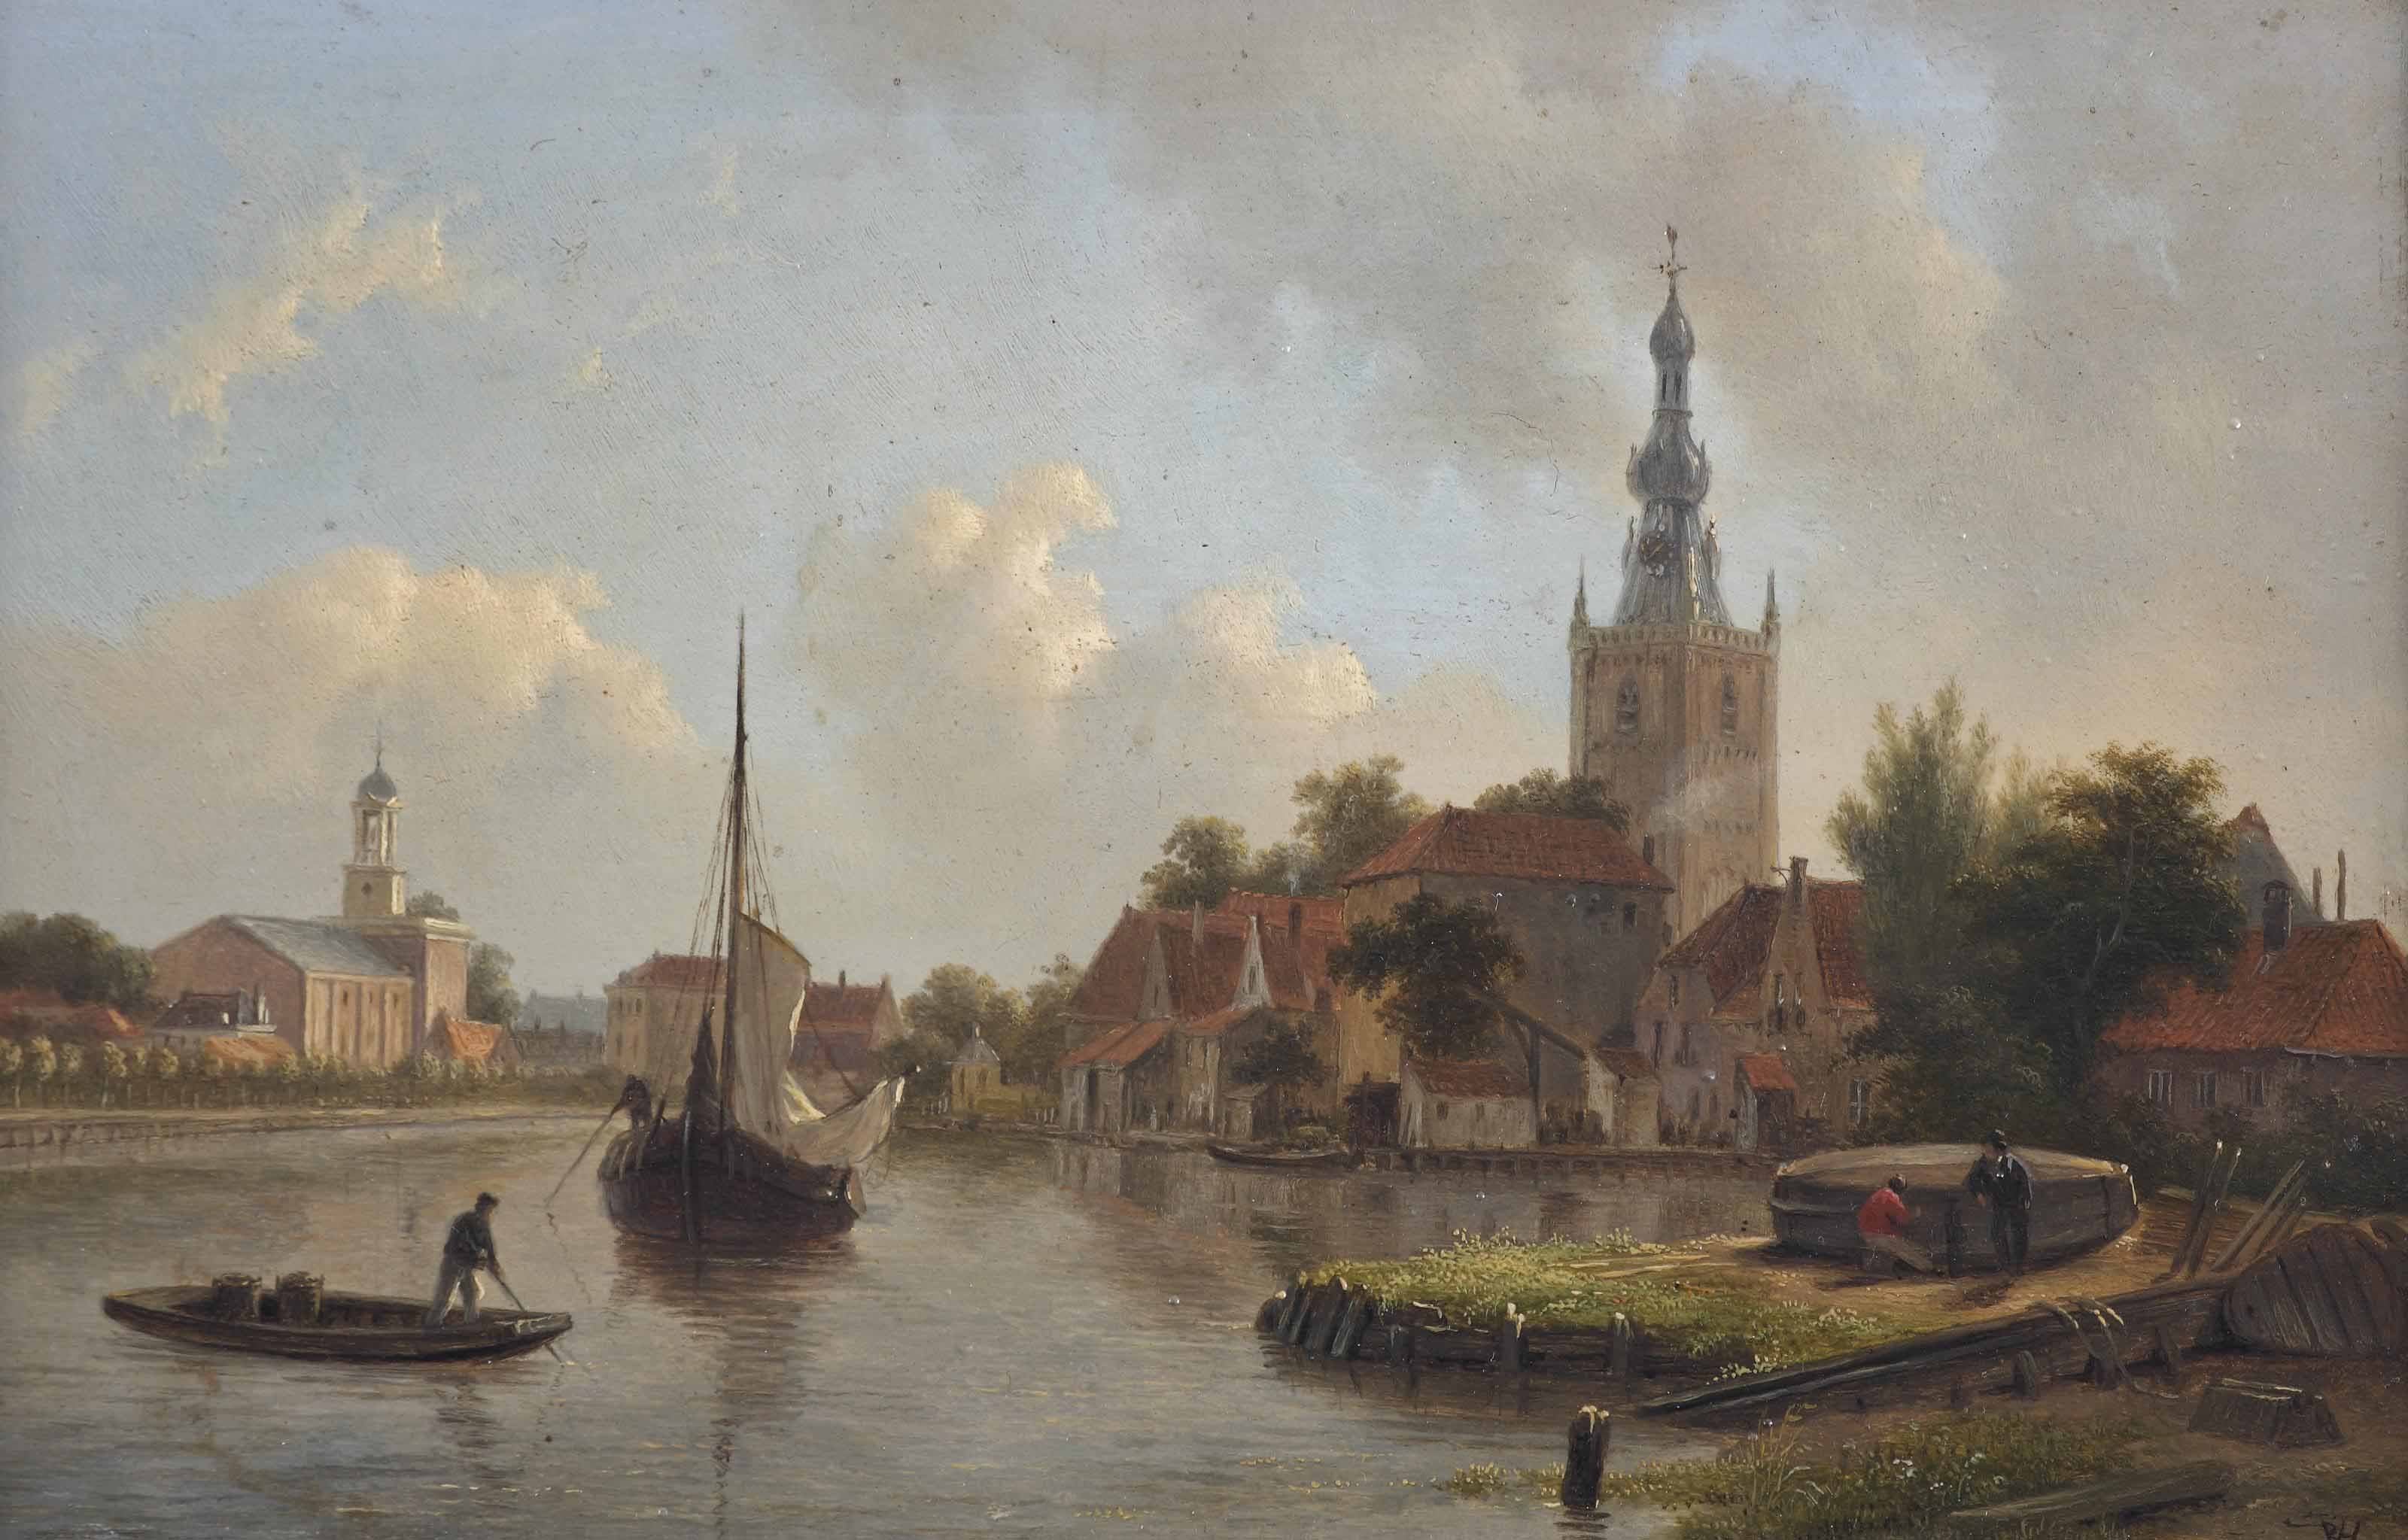 Overschie: figures repairing a boat along the river by Overschie